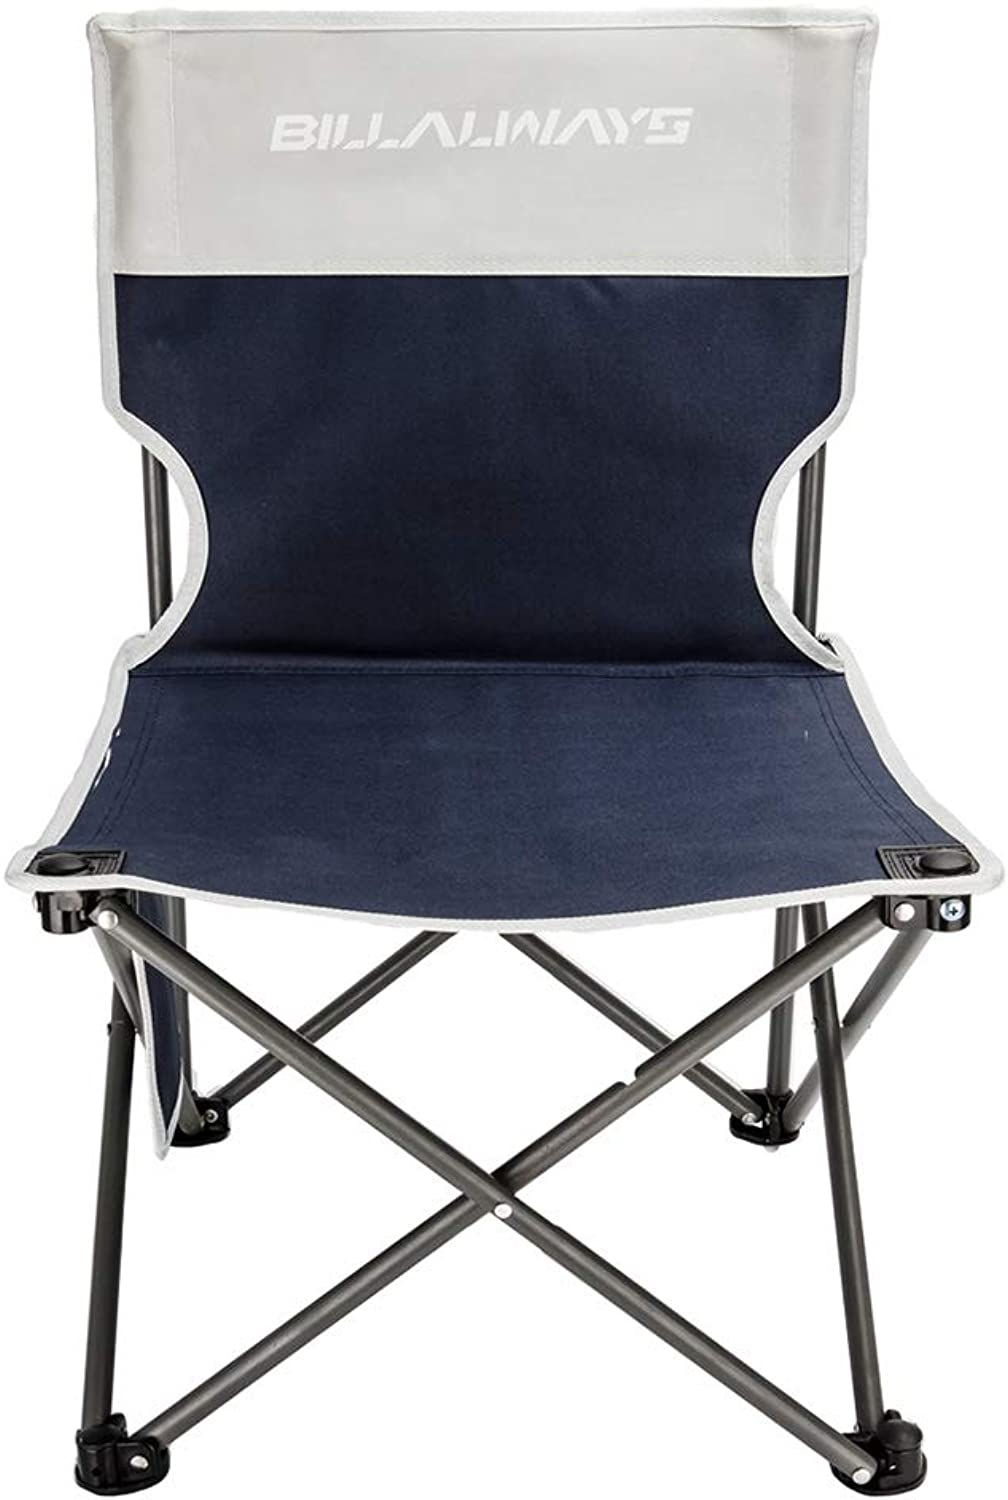 Folding Portable Fishing Chair Collapsible Camp Stool for Camp Traveling Hiking Beach Garden BBQ Lightwight Waterproof